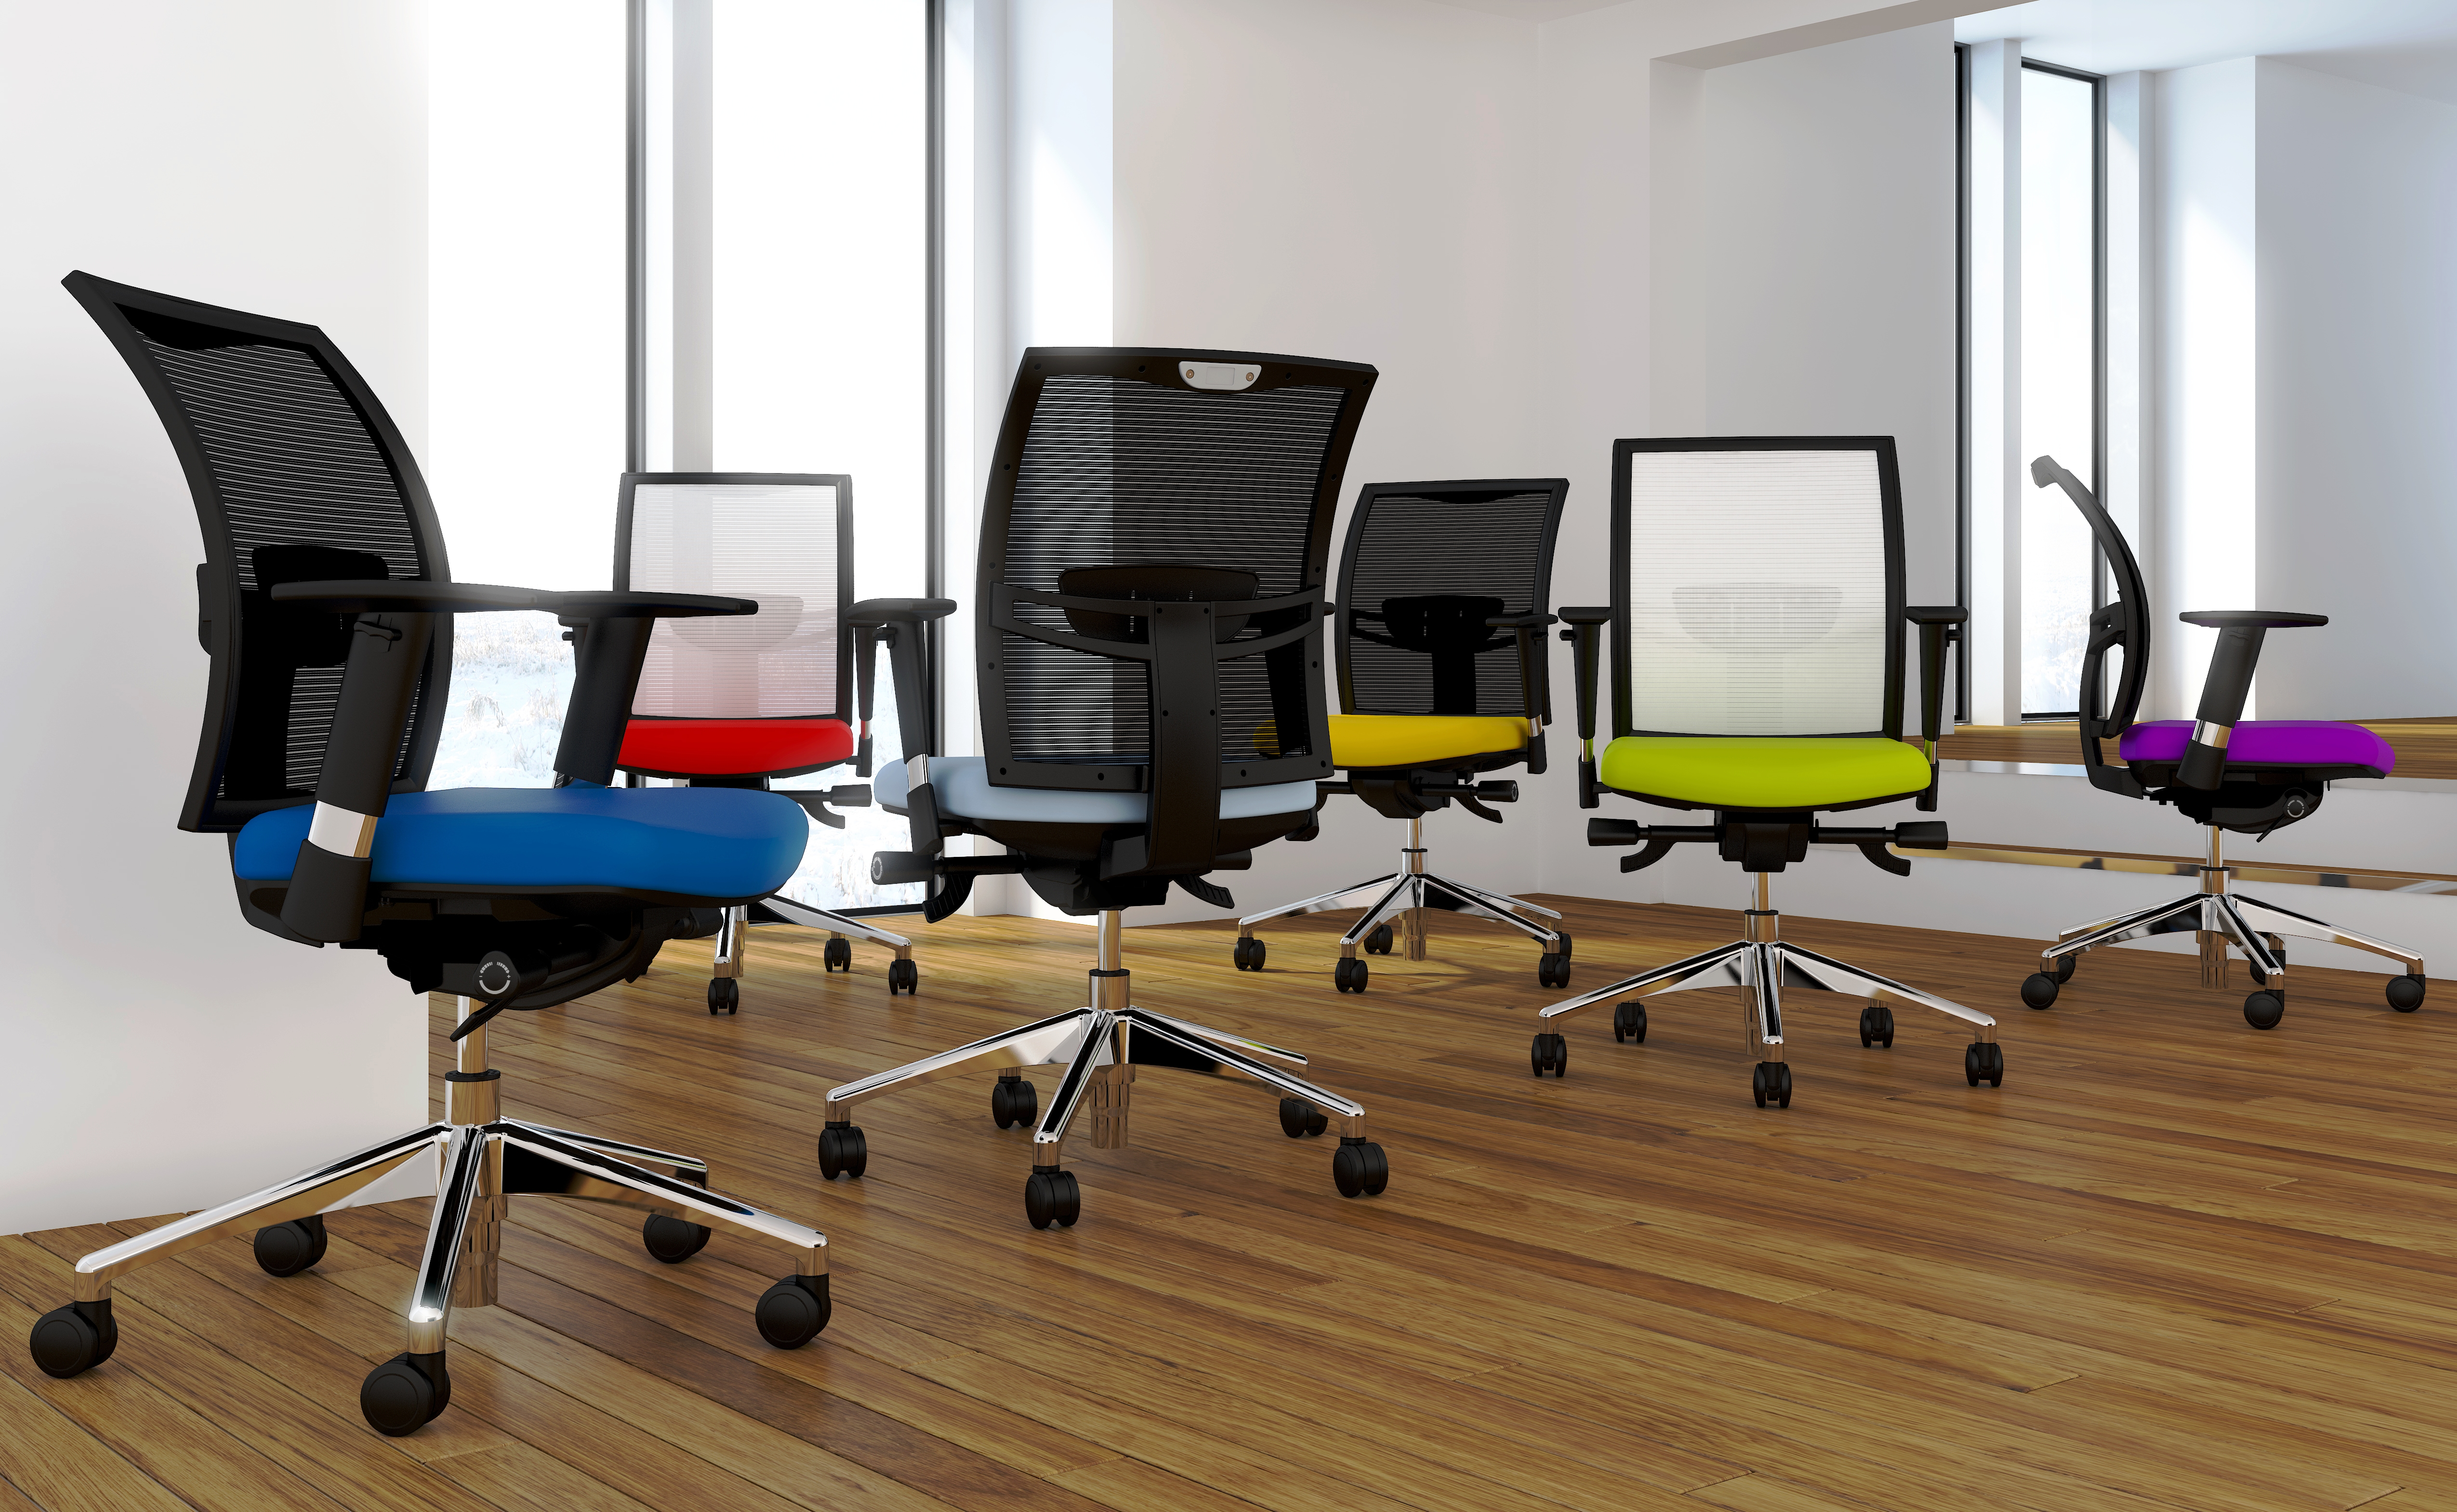 best modern office chairs images on pinterest office seating  - office seating eclipse business furniture limited